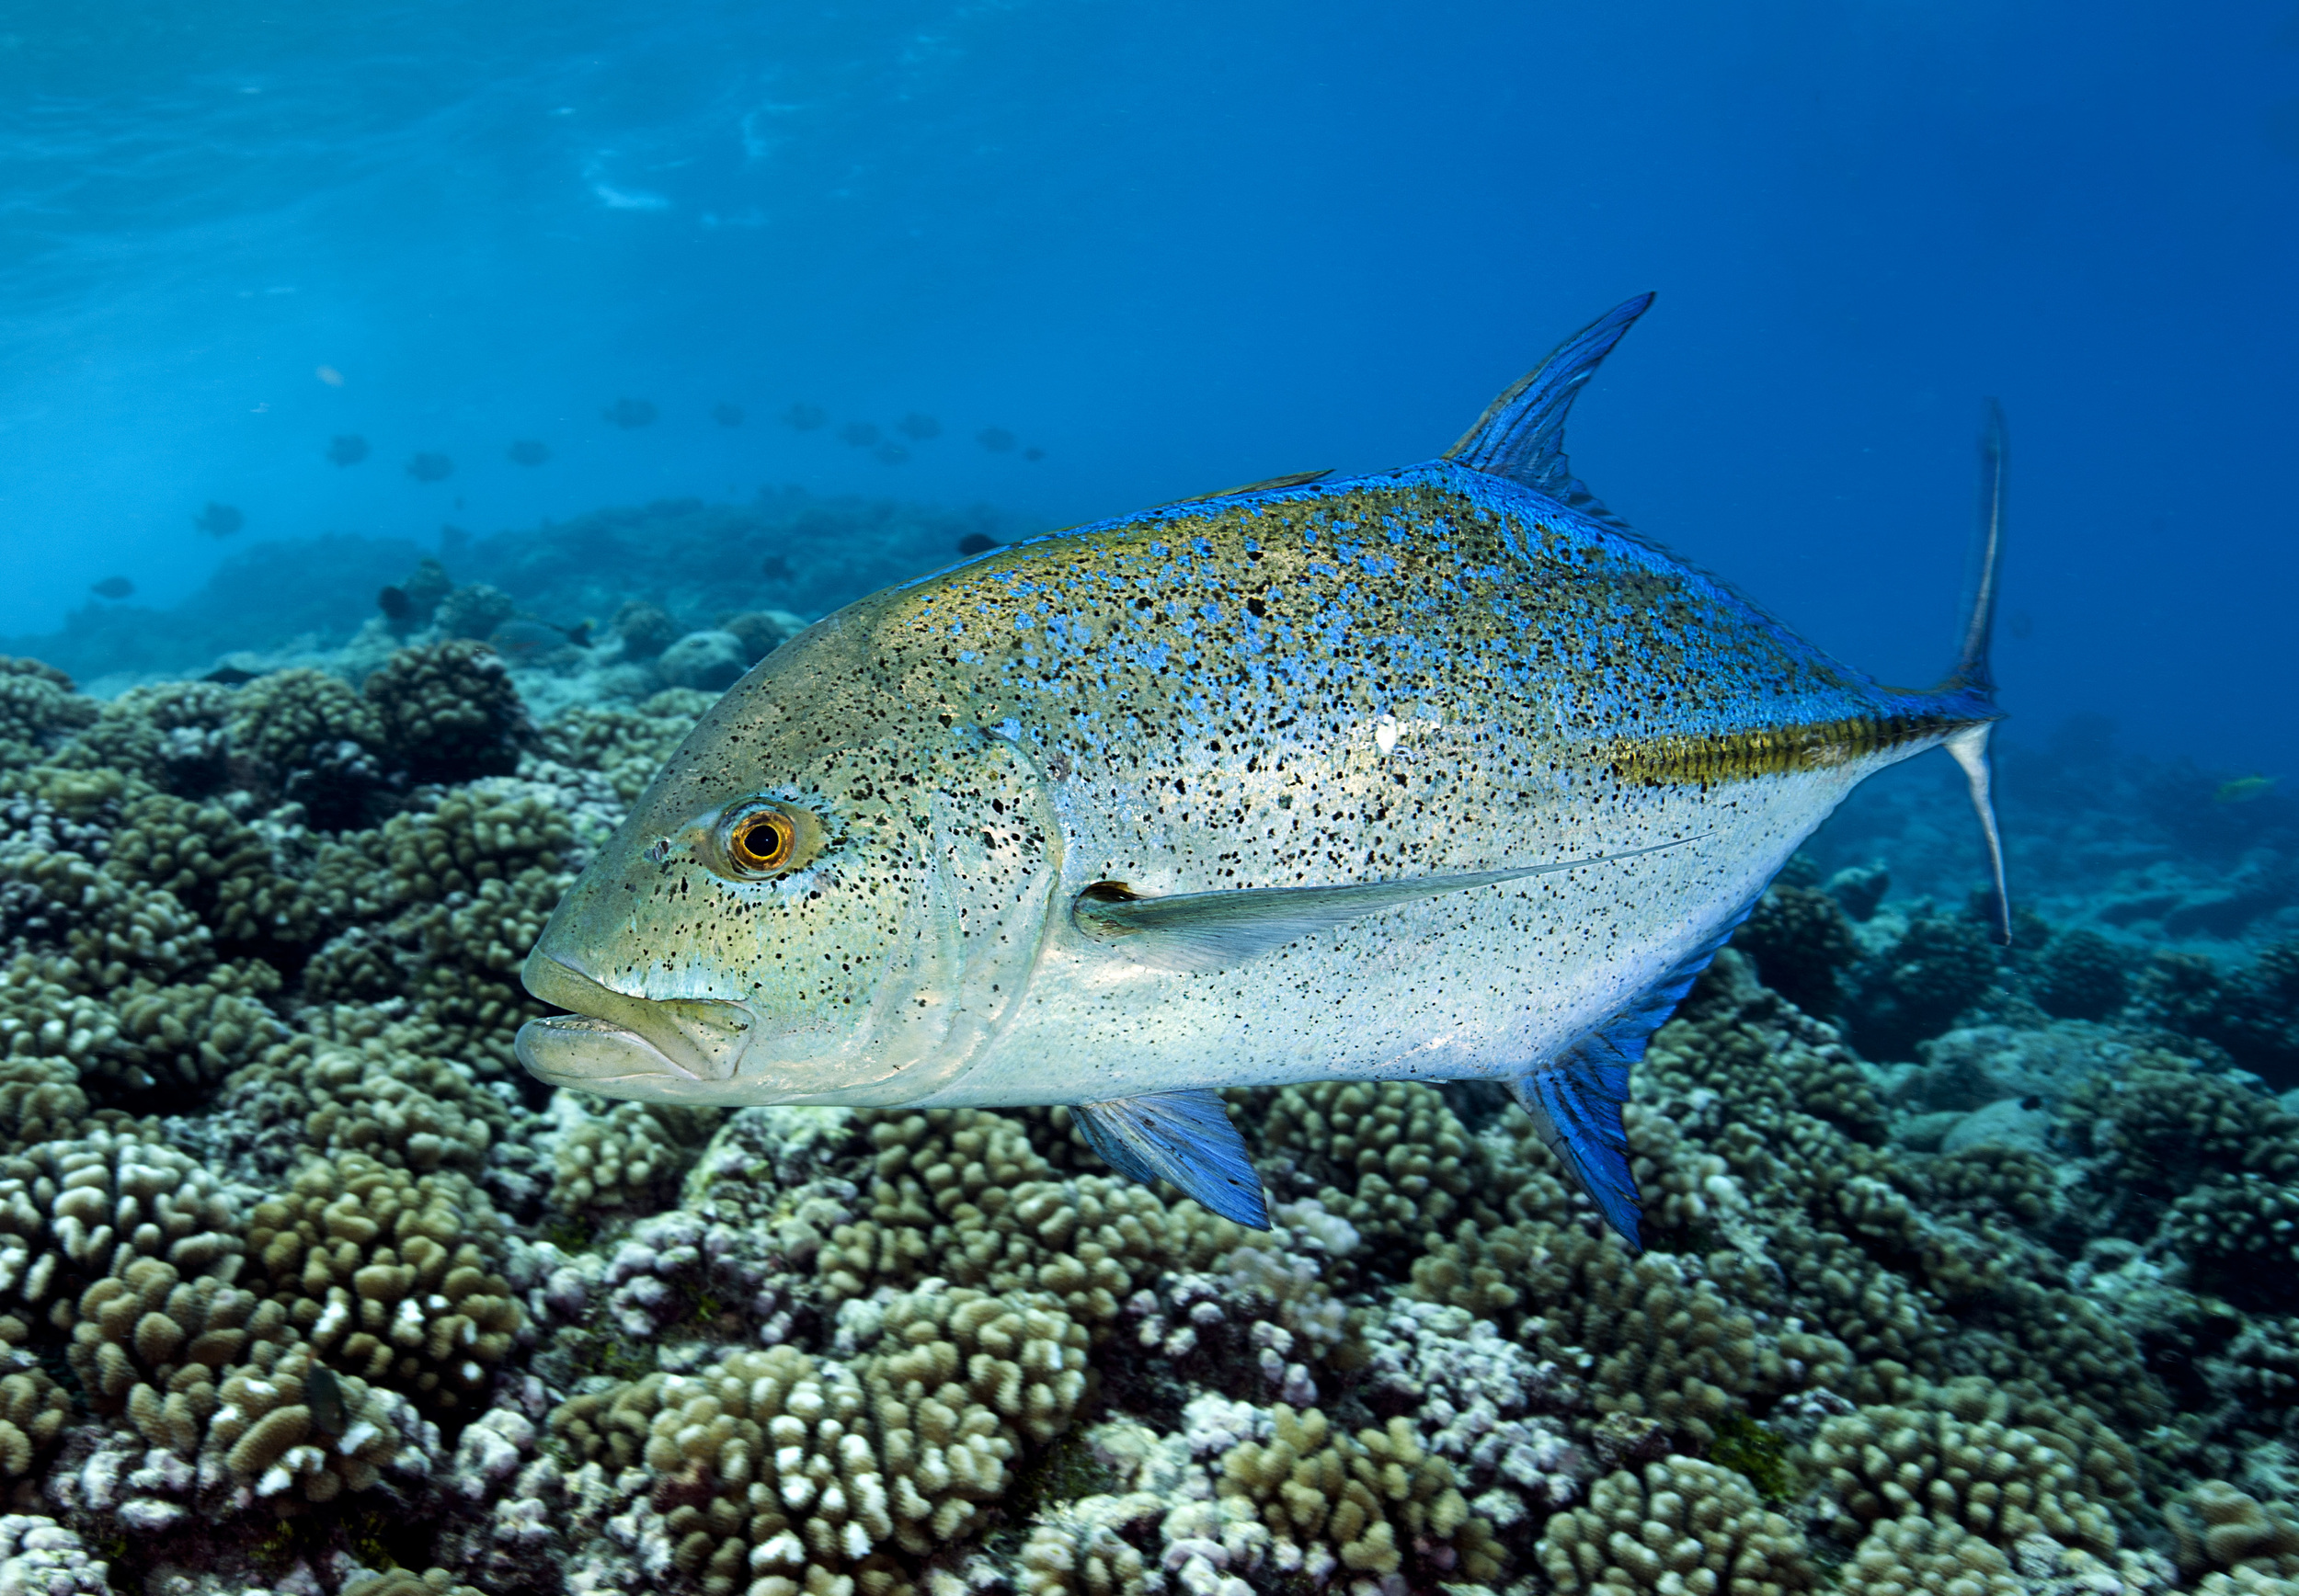 Bluefin trevally, Tiputa Pass, Rangiroa, French Polynesia.